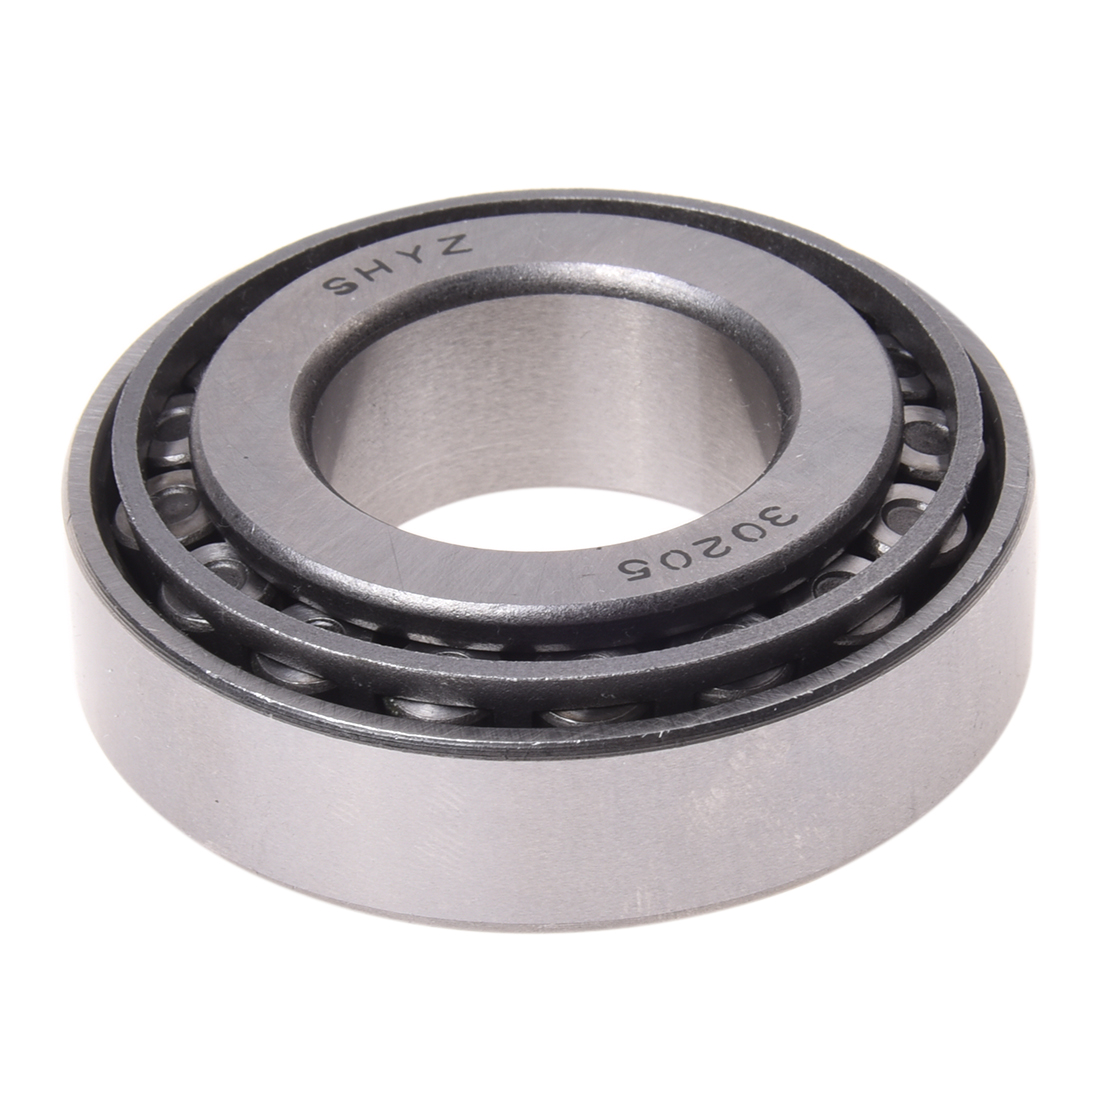 Single Row 15mm Thick 52mm Outside Dia Tapered Roller Bearing 30205 timken 28300 tapered roller bearing single cup standard tolerance straight outside diameter steel inch 3 0000 outside diameter 0 6105 width